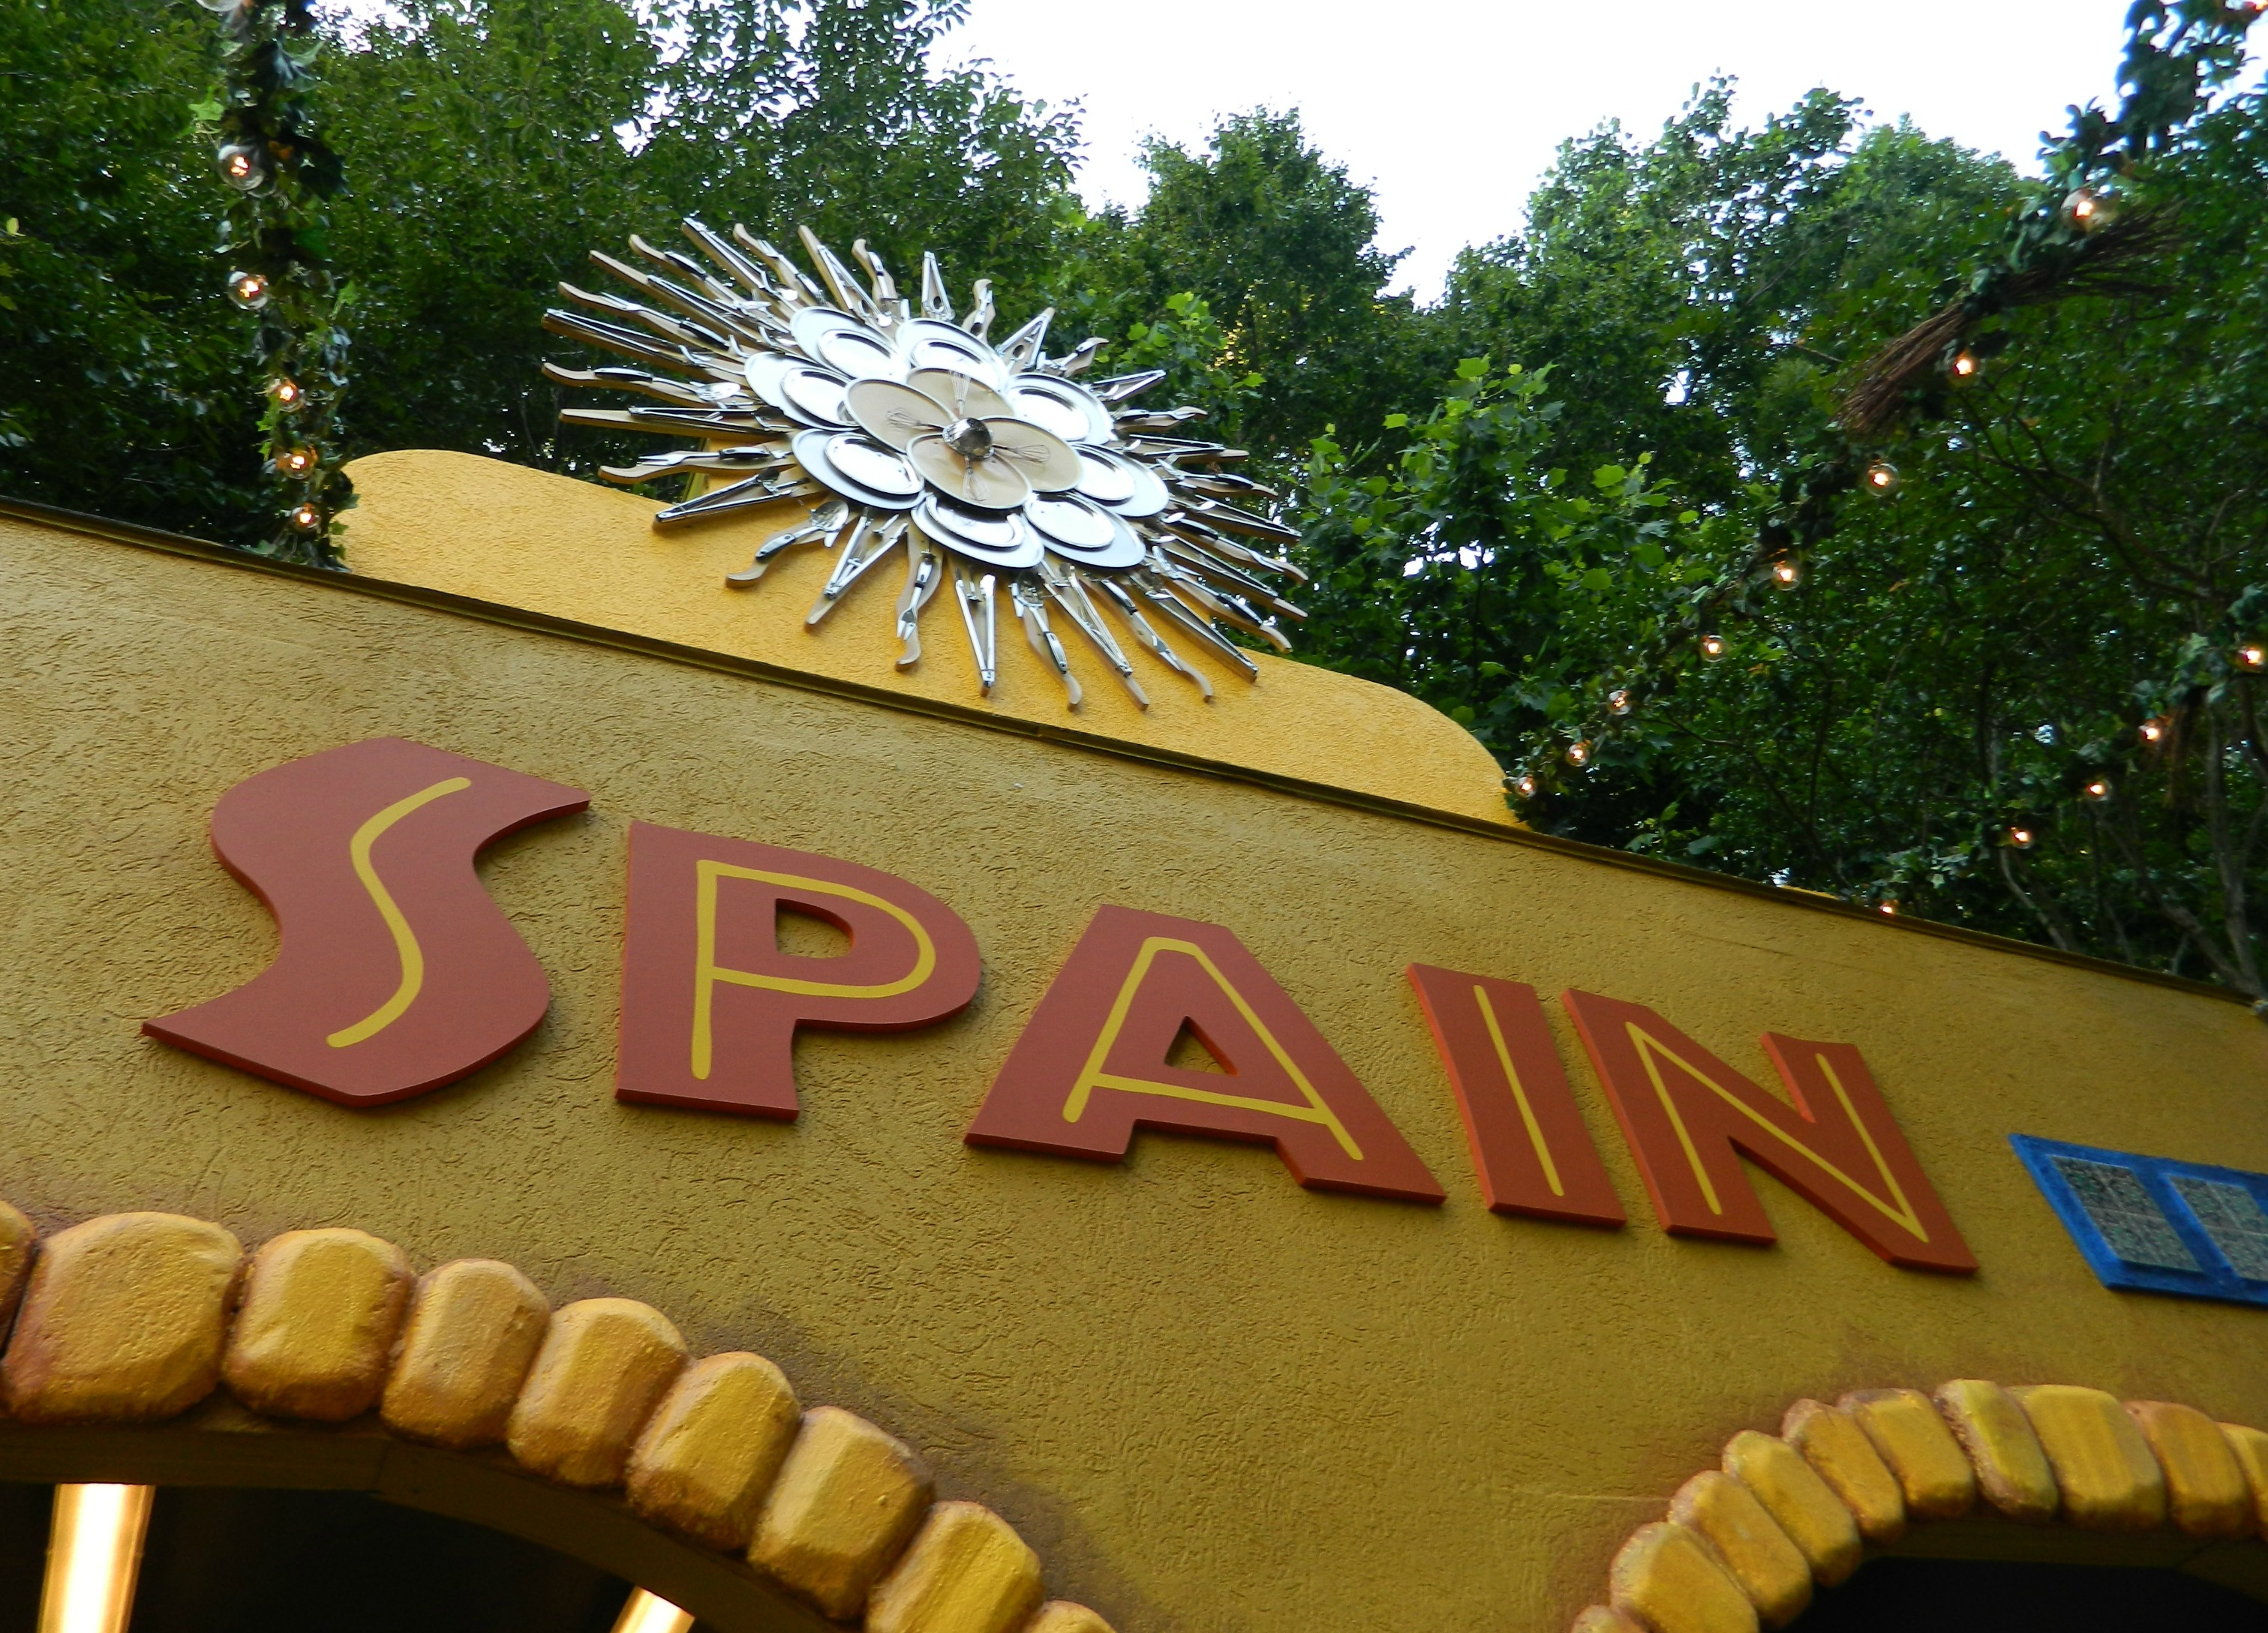 Busch Gardens\' Food & Wine Festival 2014: Menus and Pictures